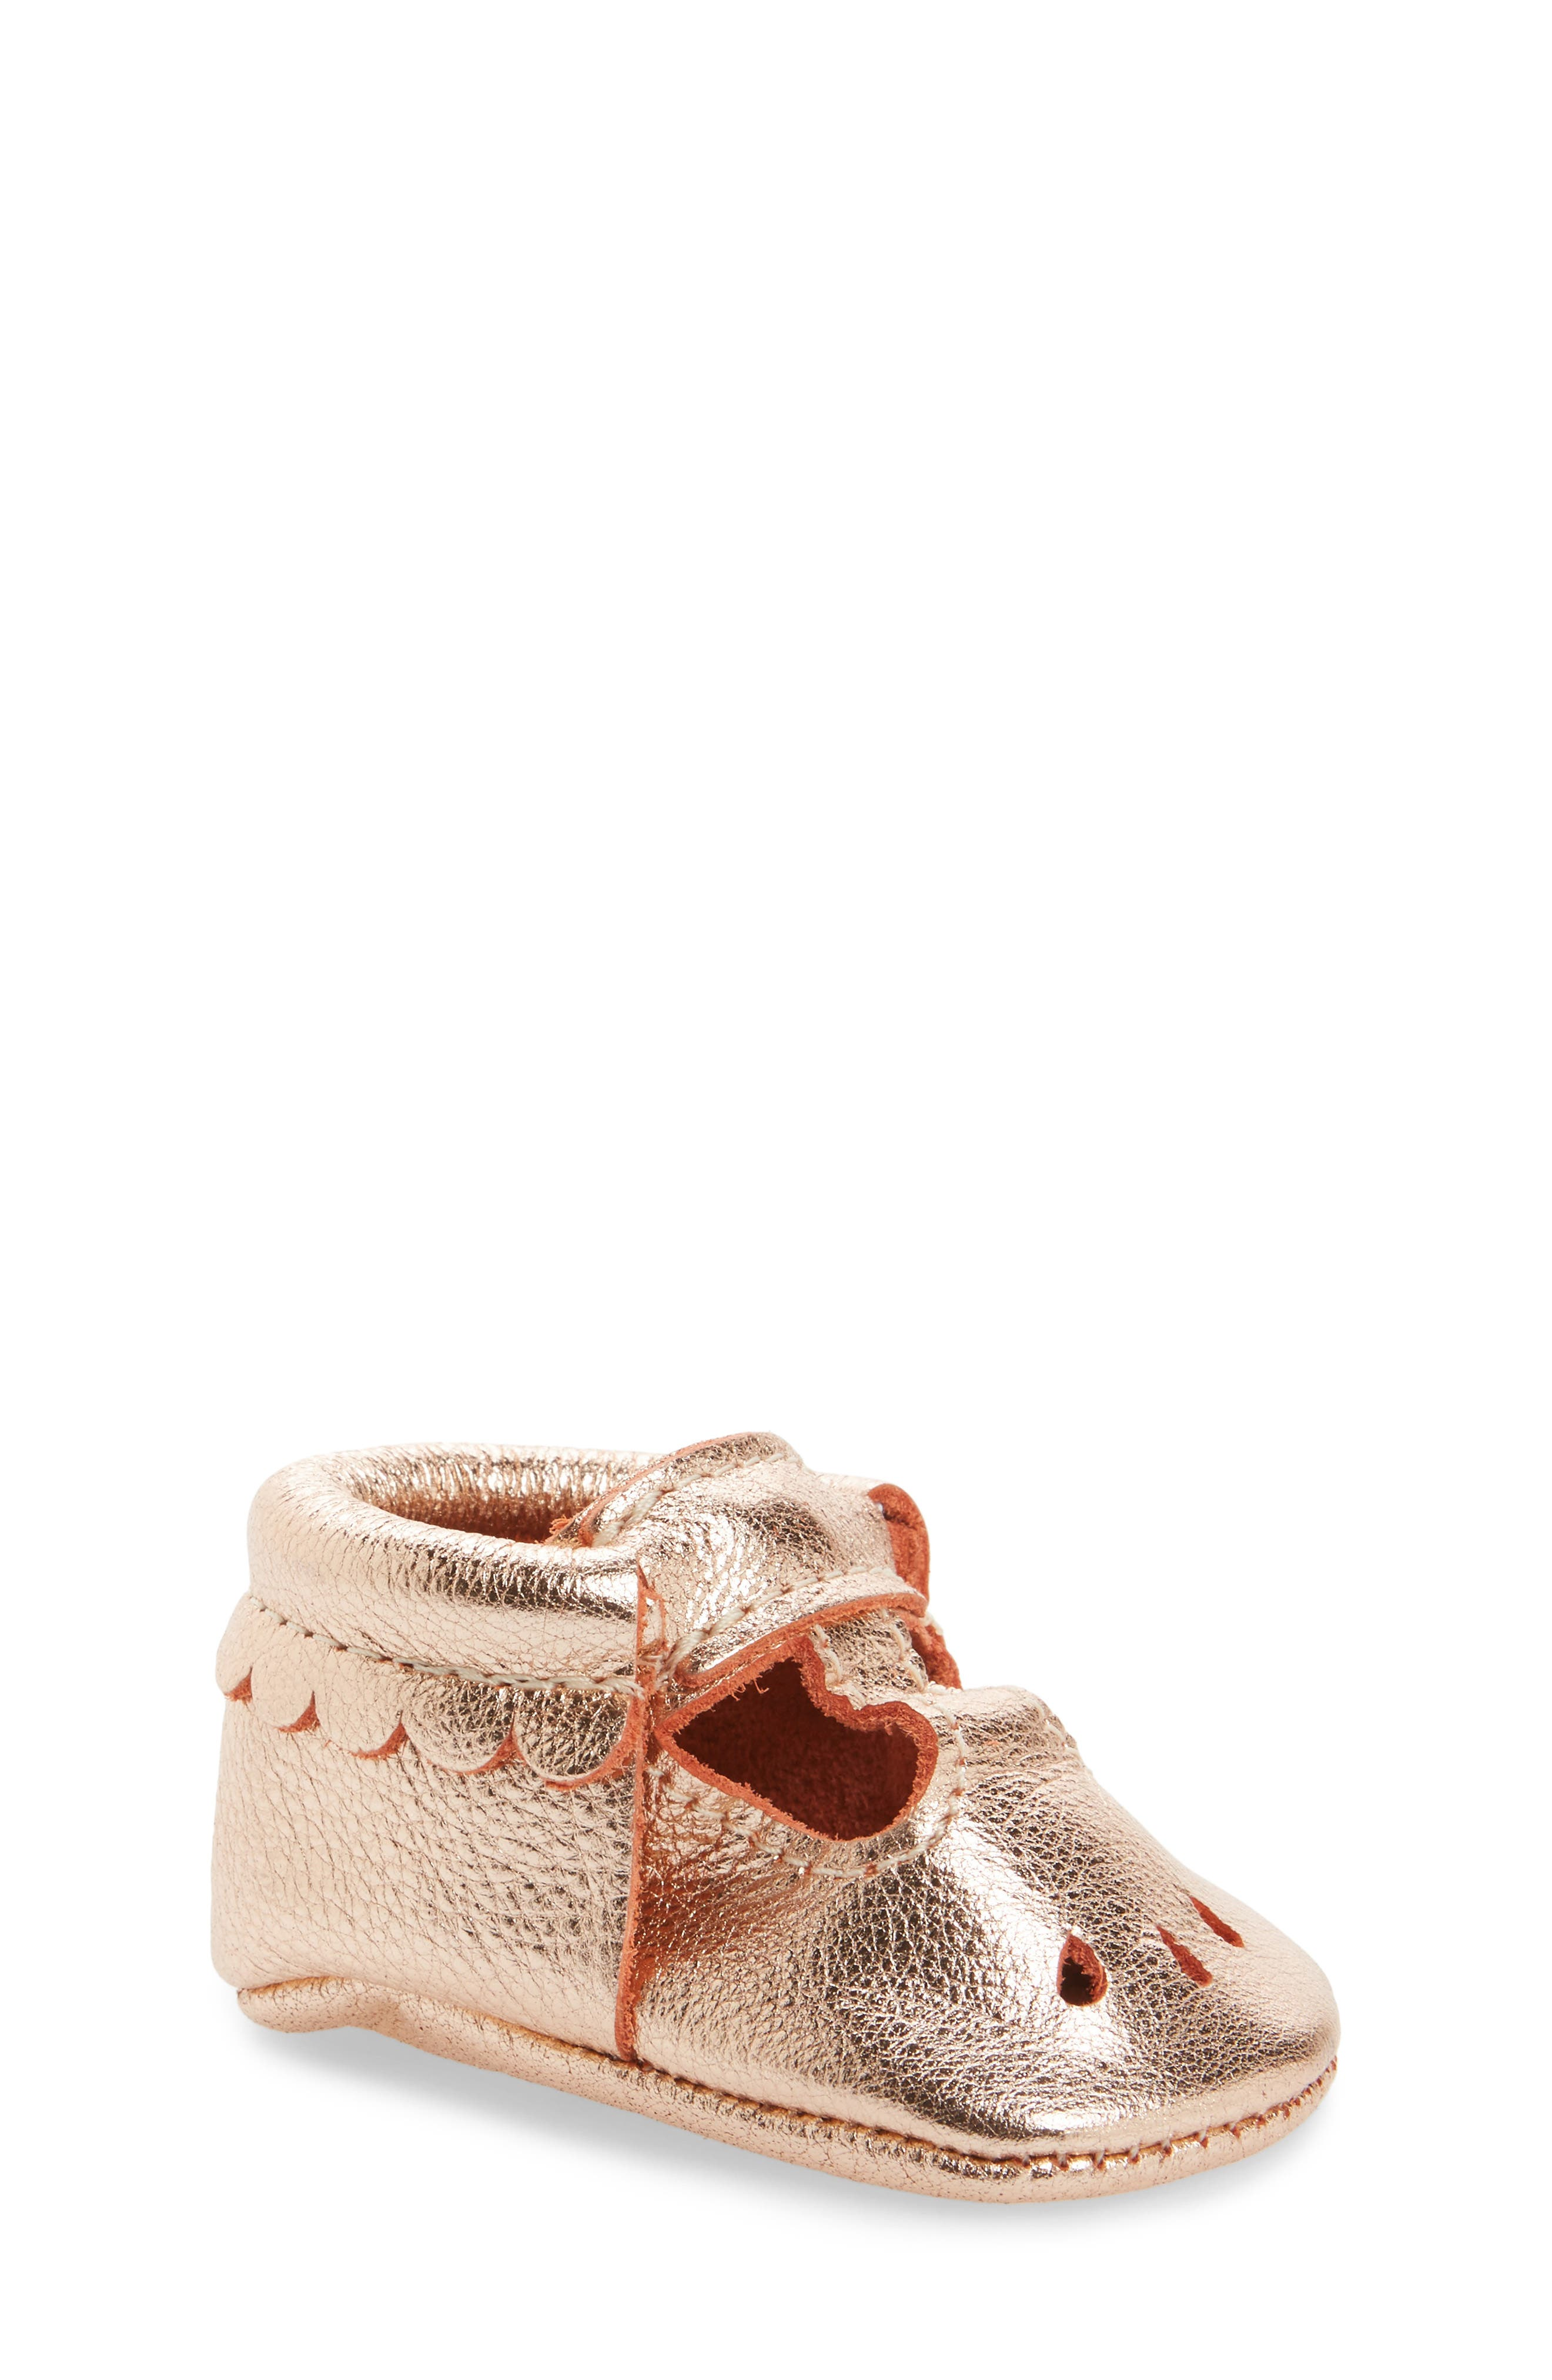 Perforated Mary Jane Moccasin,                             Main thumbnail 1, color,                             220